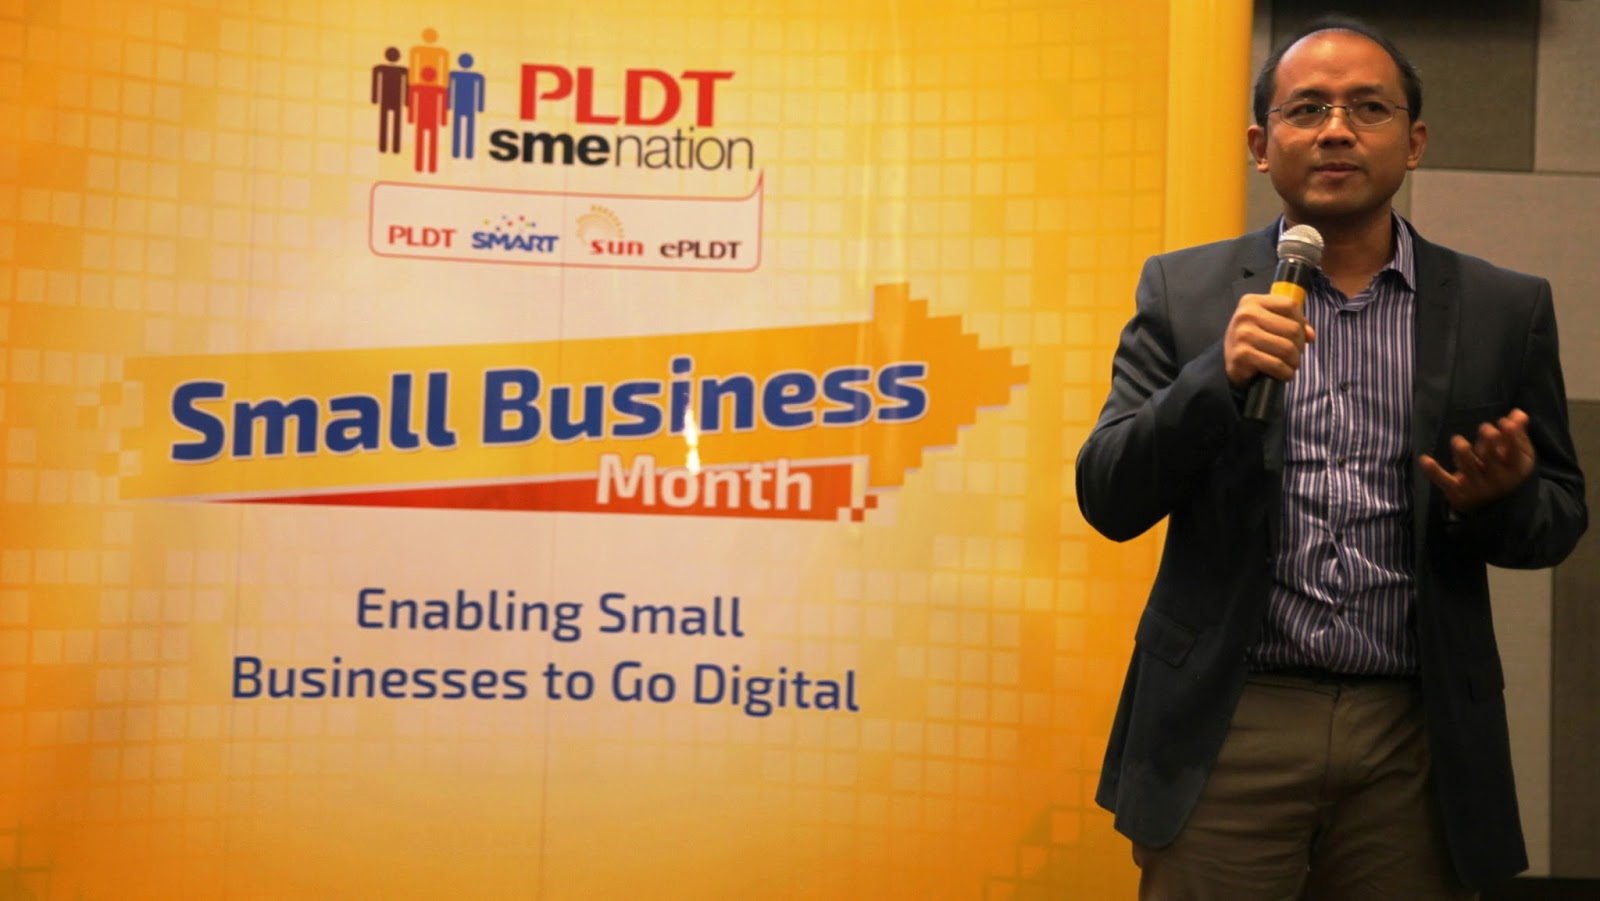 Google Apps for Work for SMEs now available via PLDT SME Nation